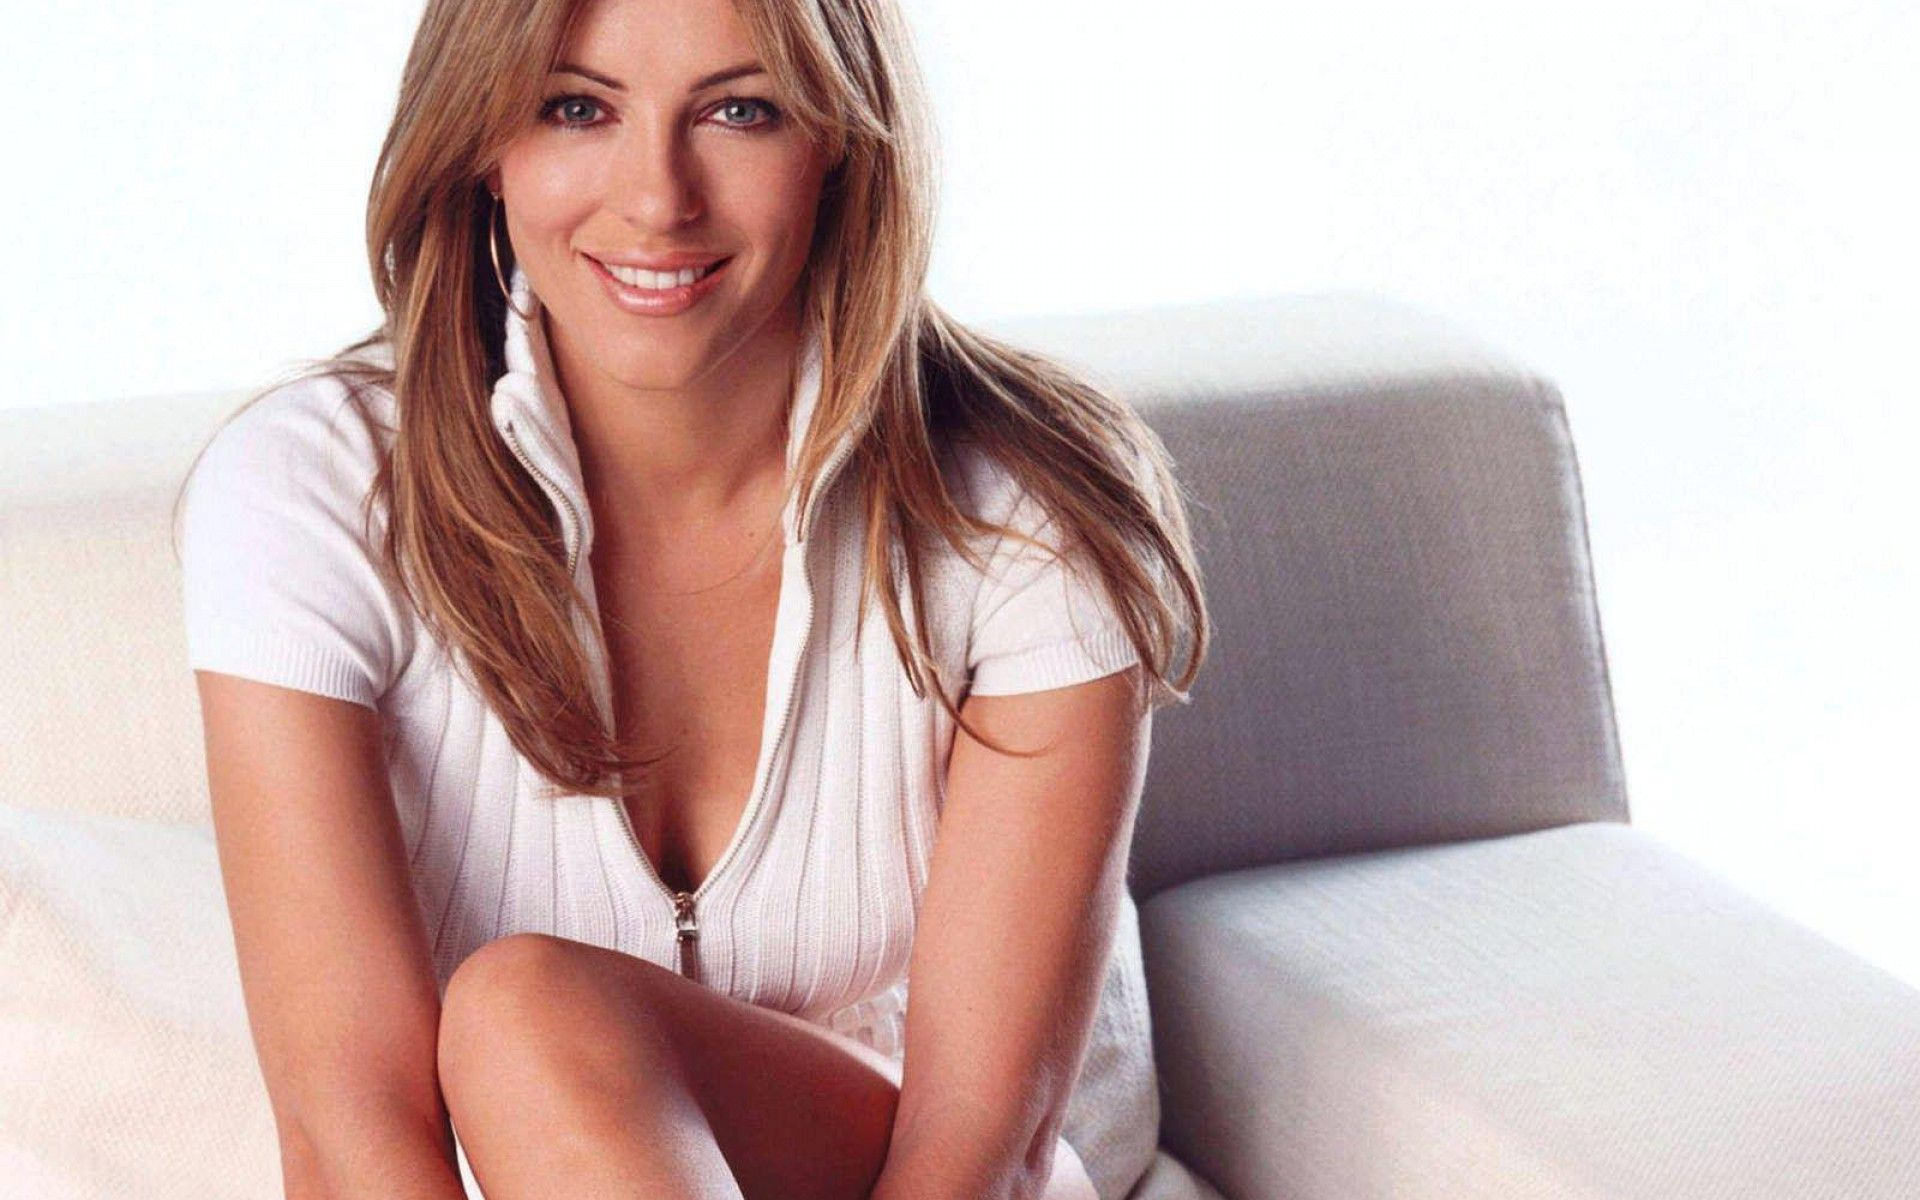 Elizabeth Hurley Wallpapers, PC 46 Elizabeth Hurley Pics ...